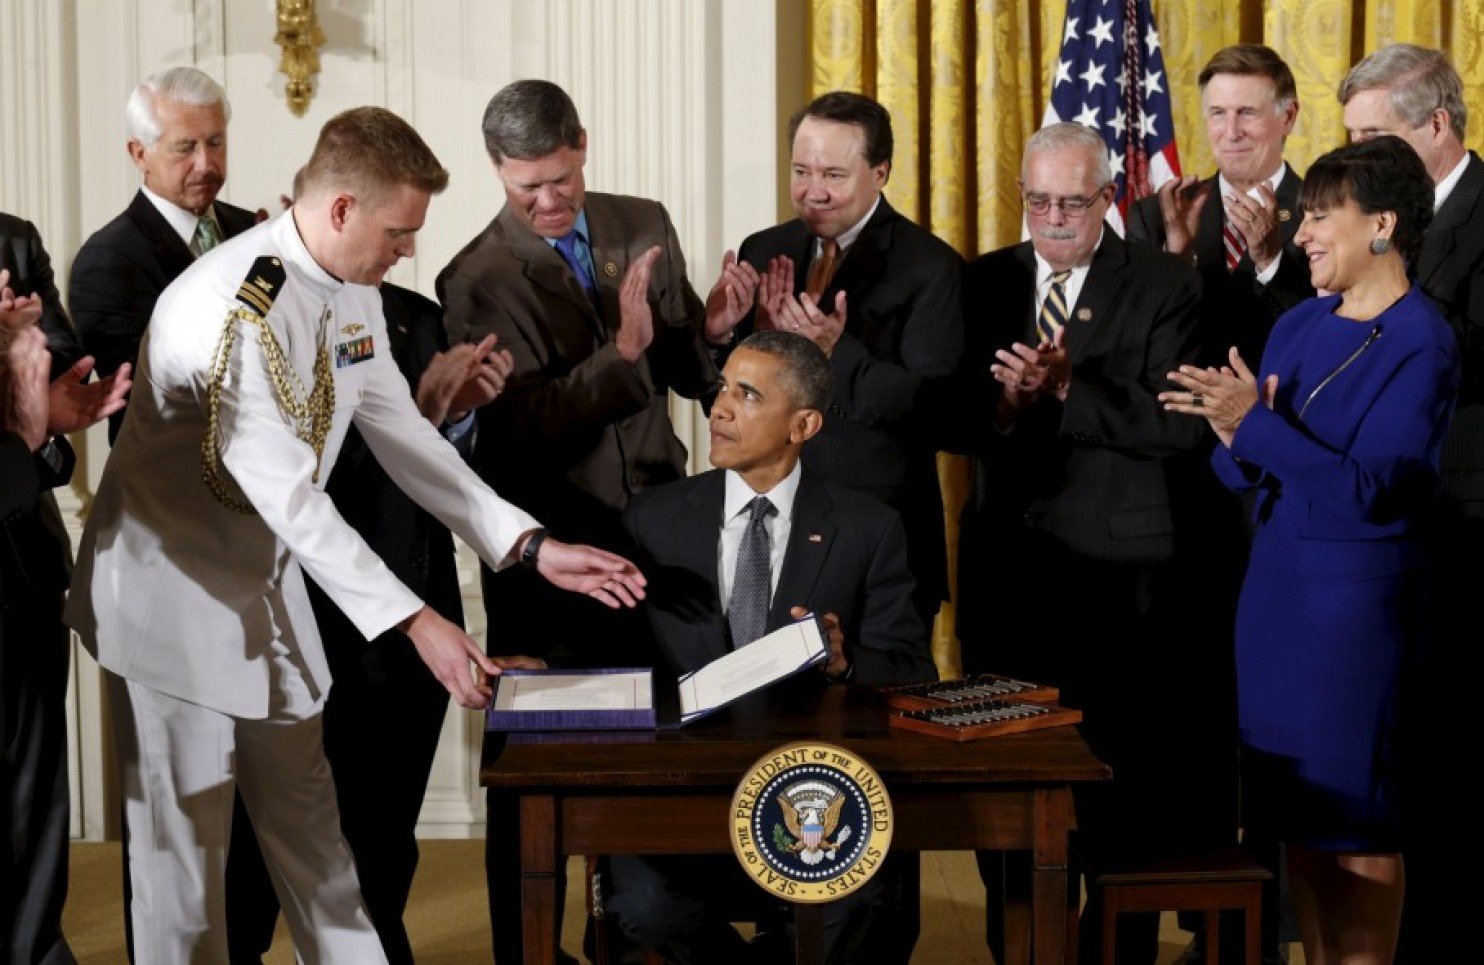 Surrounded by Cabinet officials and members of Congress, President Barack Obama signs H.R. 2146, which sandwiched in other measures, provided a 'fast track; to implementing the TPP. (AP Photo/Carolyn Kaster)